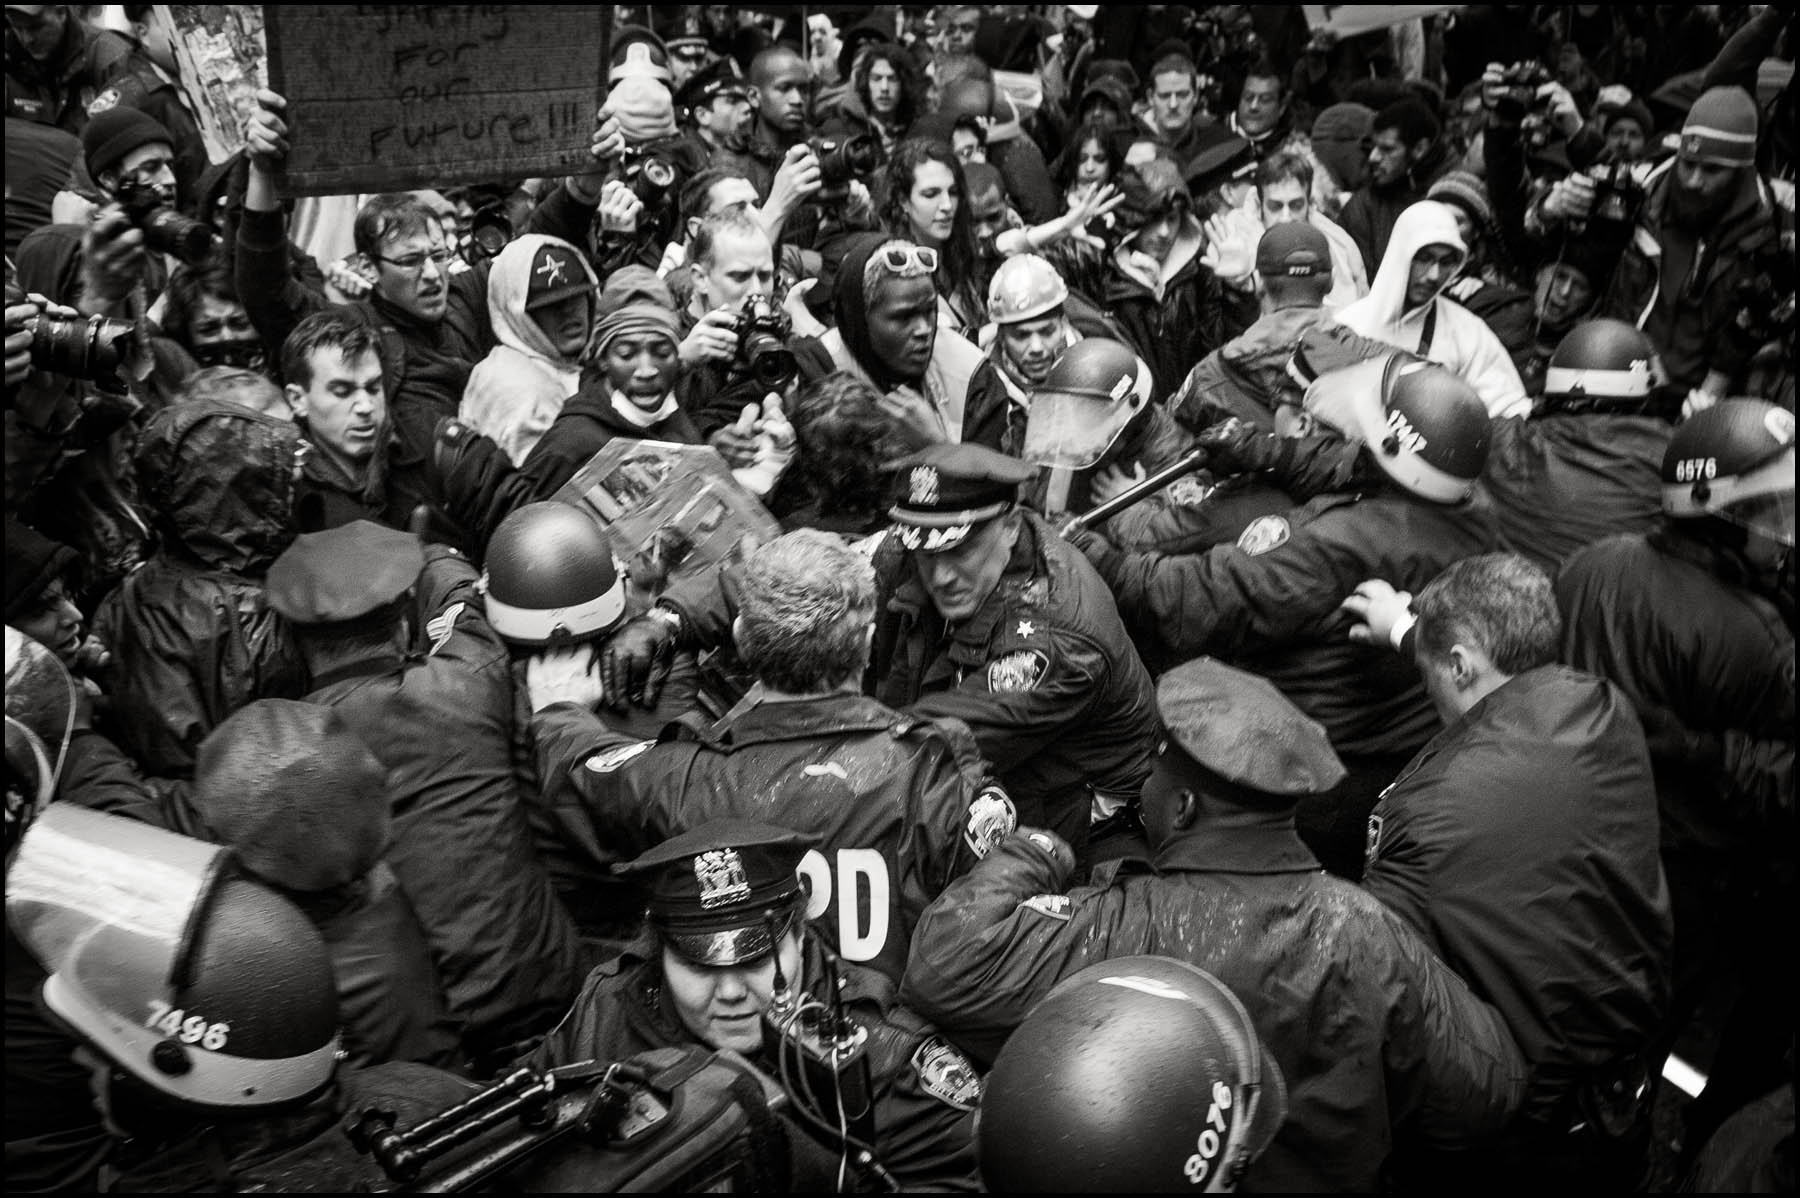 A large fight breaks out in Zuccotti Park between Police and protesters after a protesters took an officers cap.,